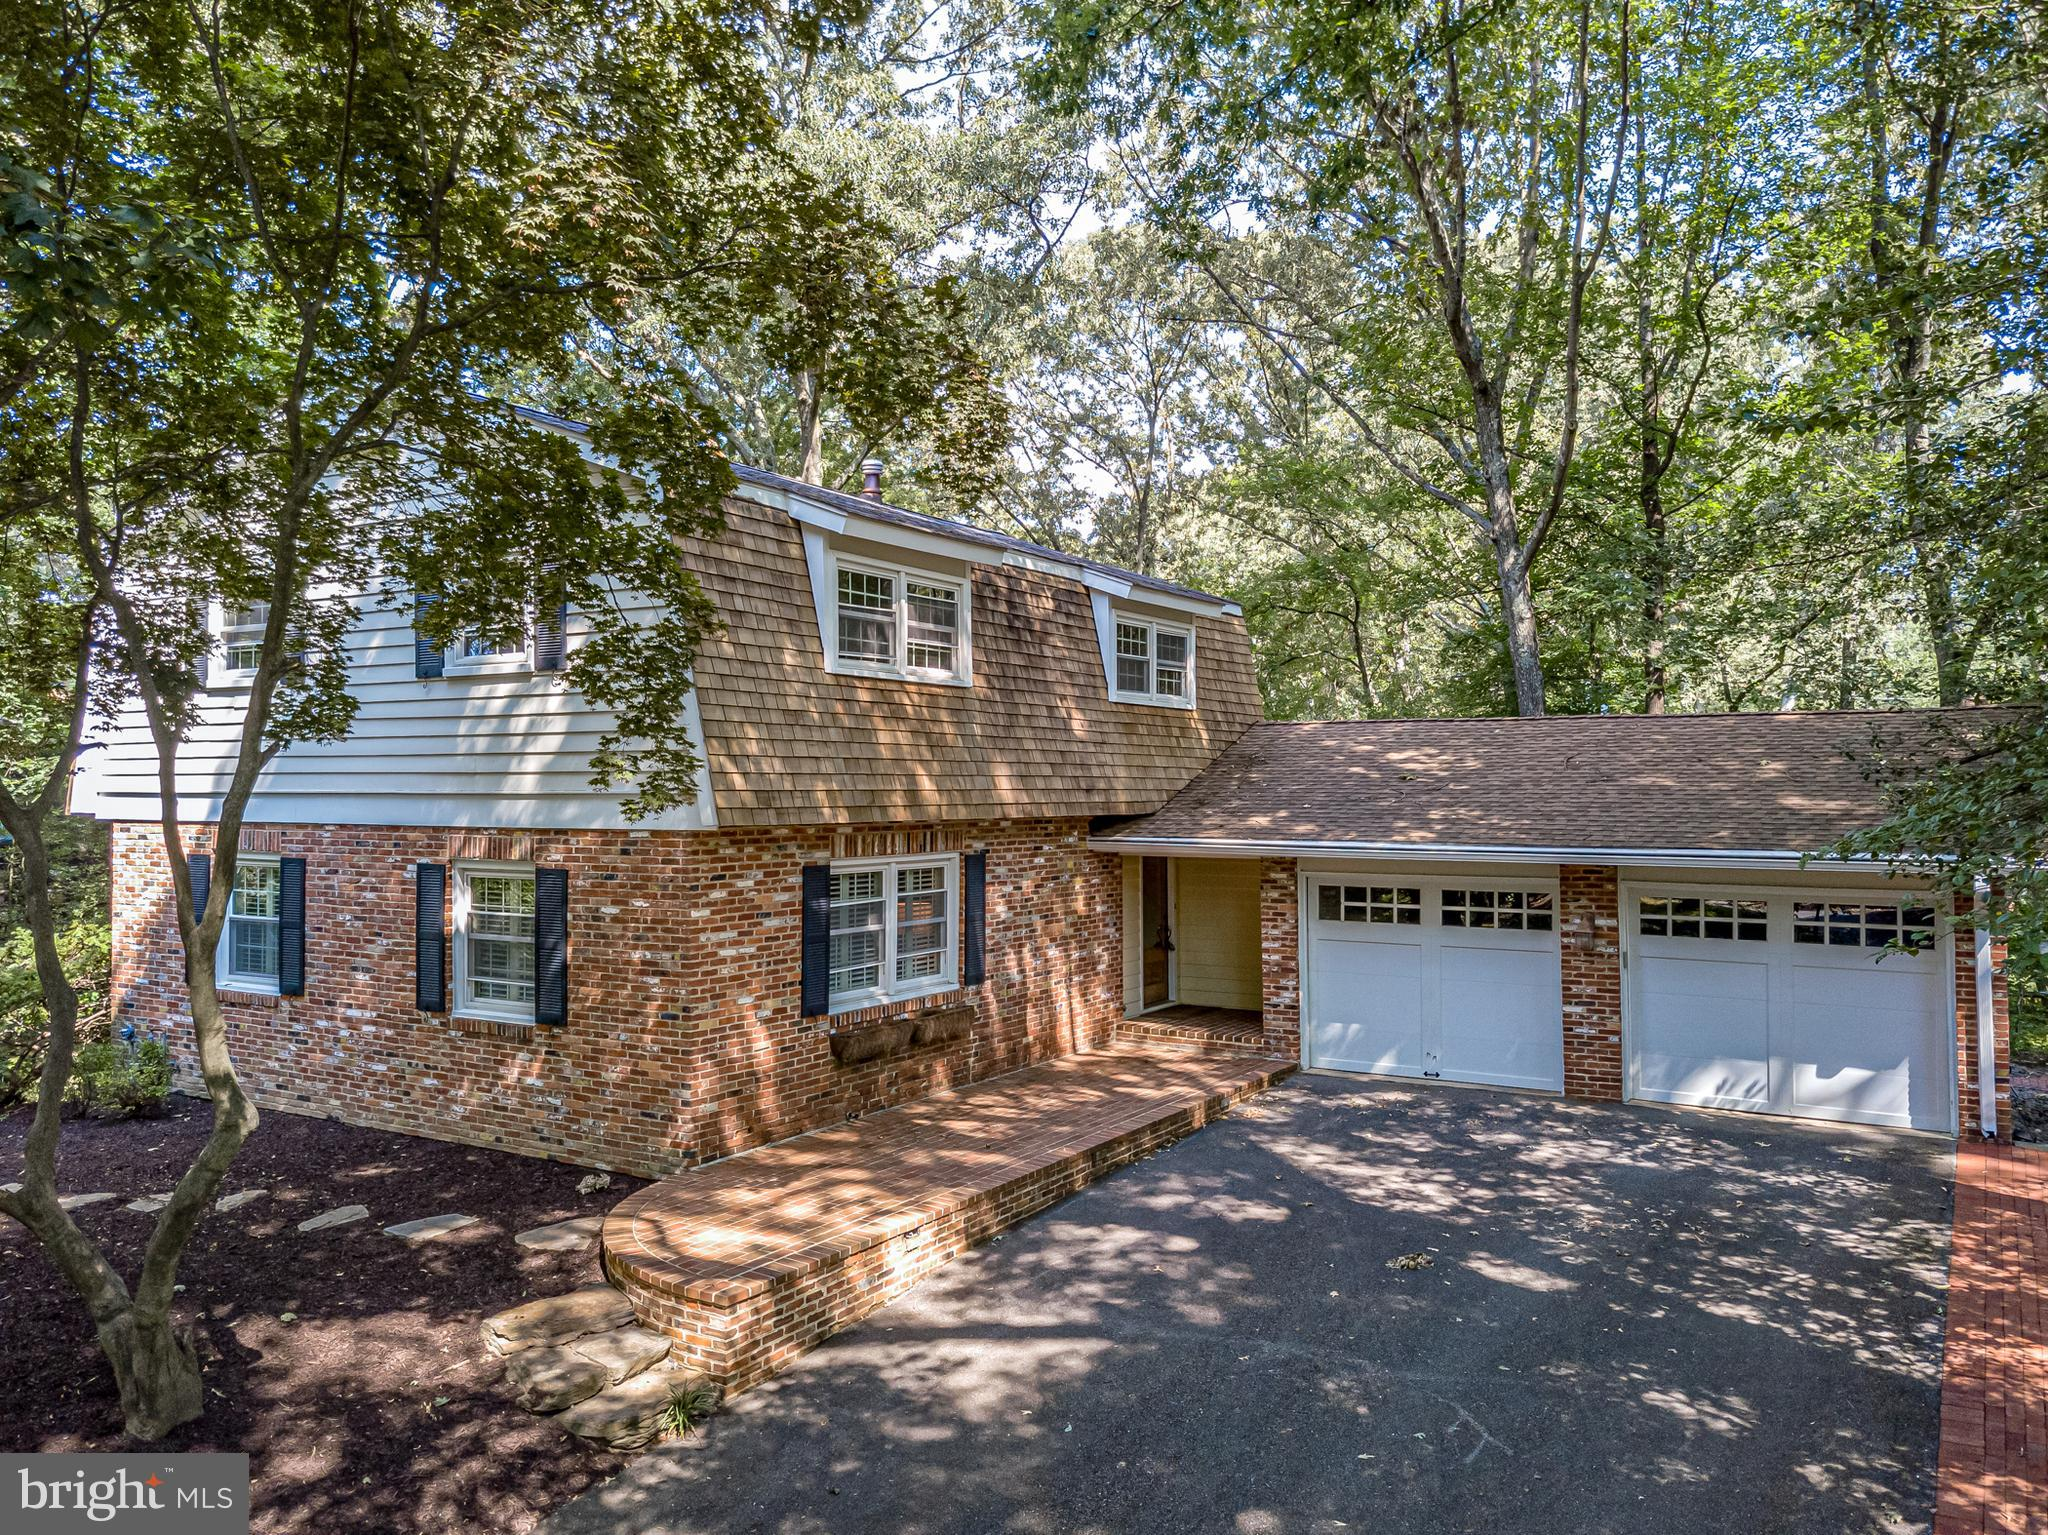 Welcome to 128 Berrywood Dr! Located in the highly sought-after Berrywood community in Severna Park,